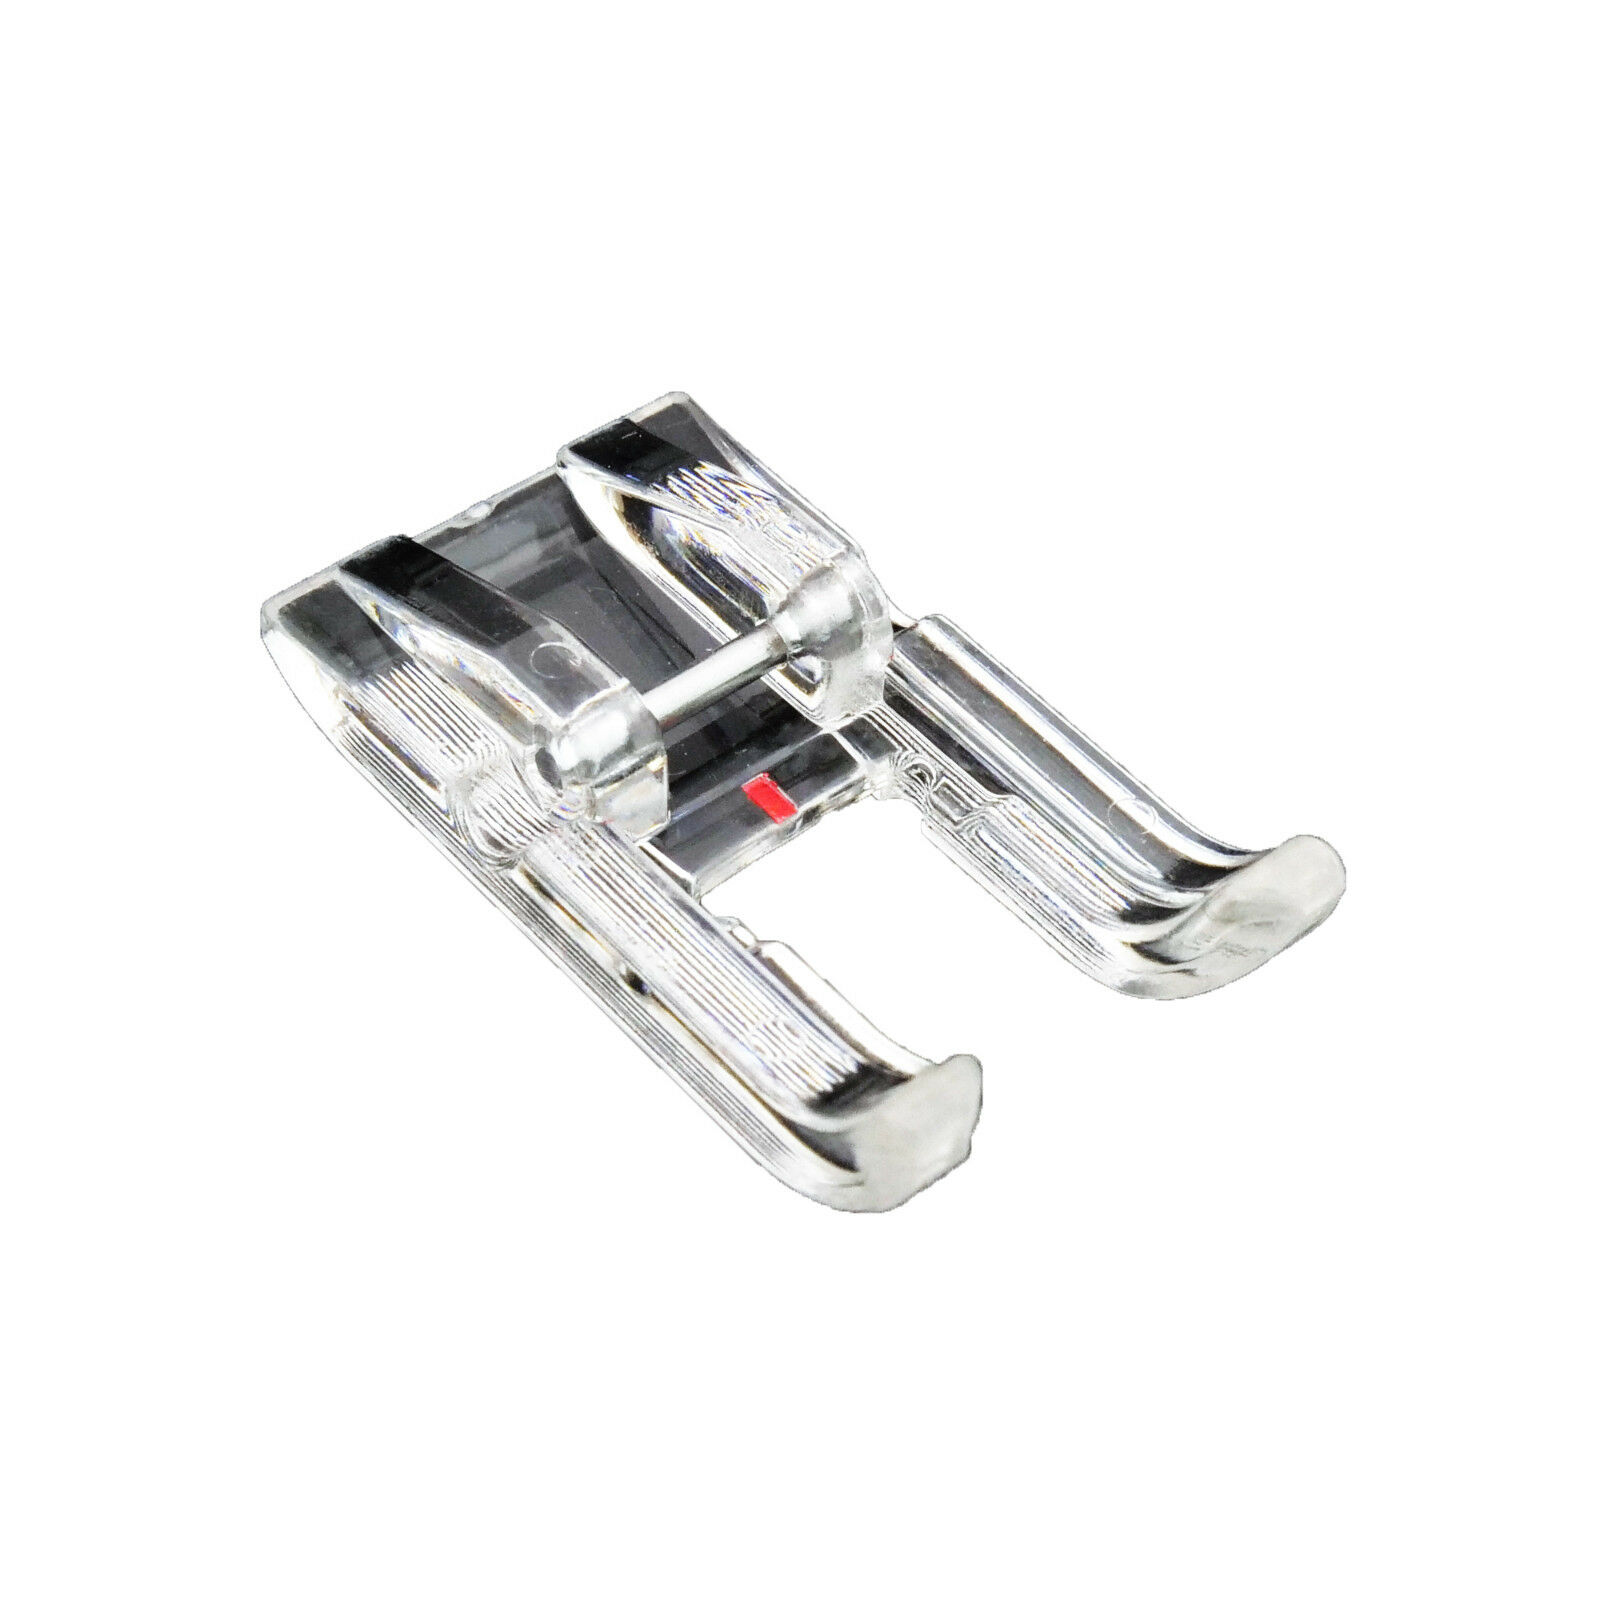 7mm Even Feed Open-Toe Walking Foot #P60444W-OT For Low Shank Sewing Machine